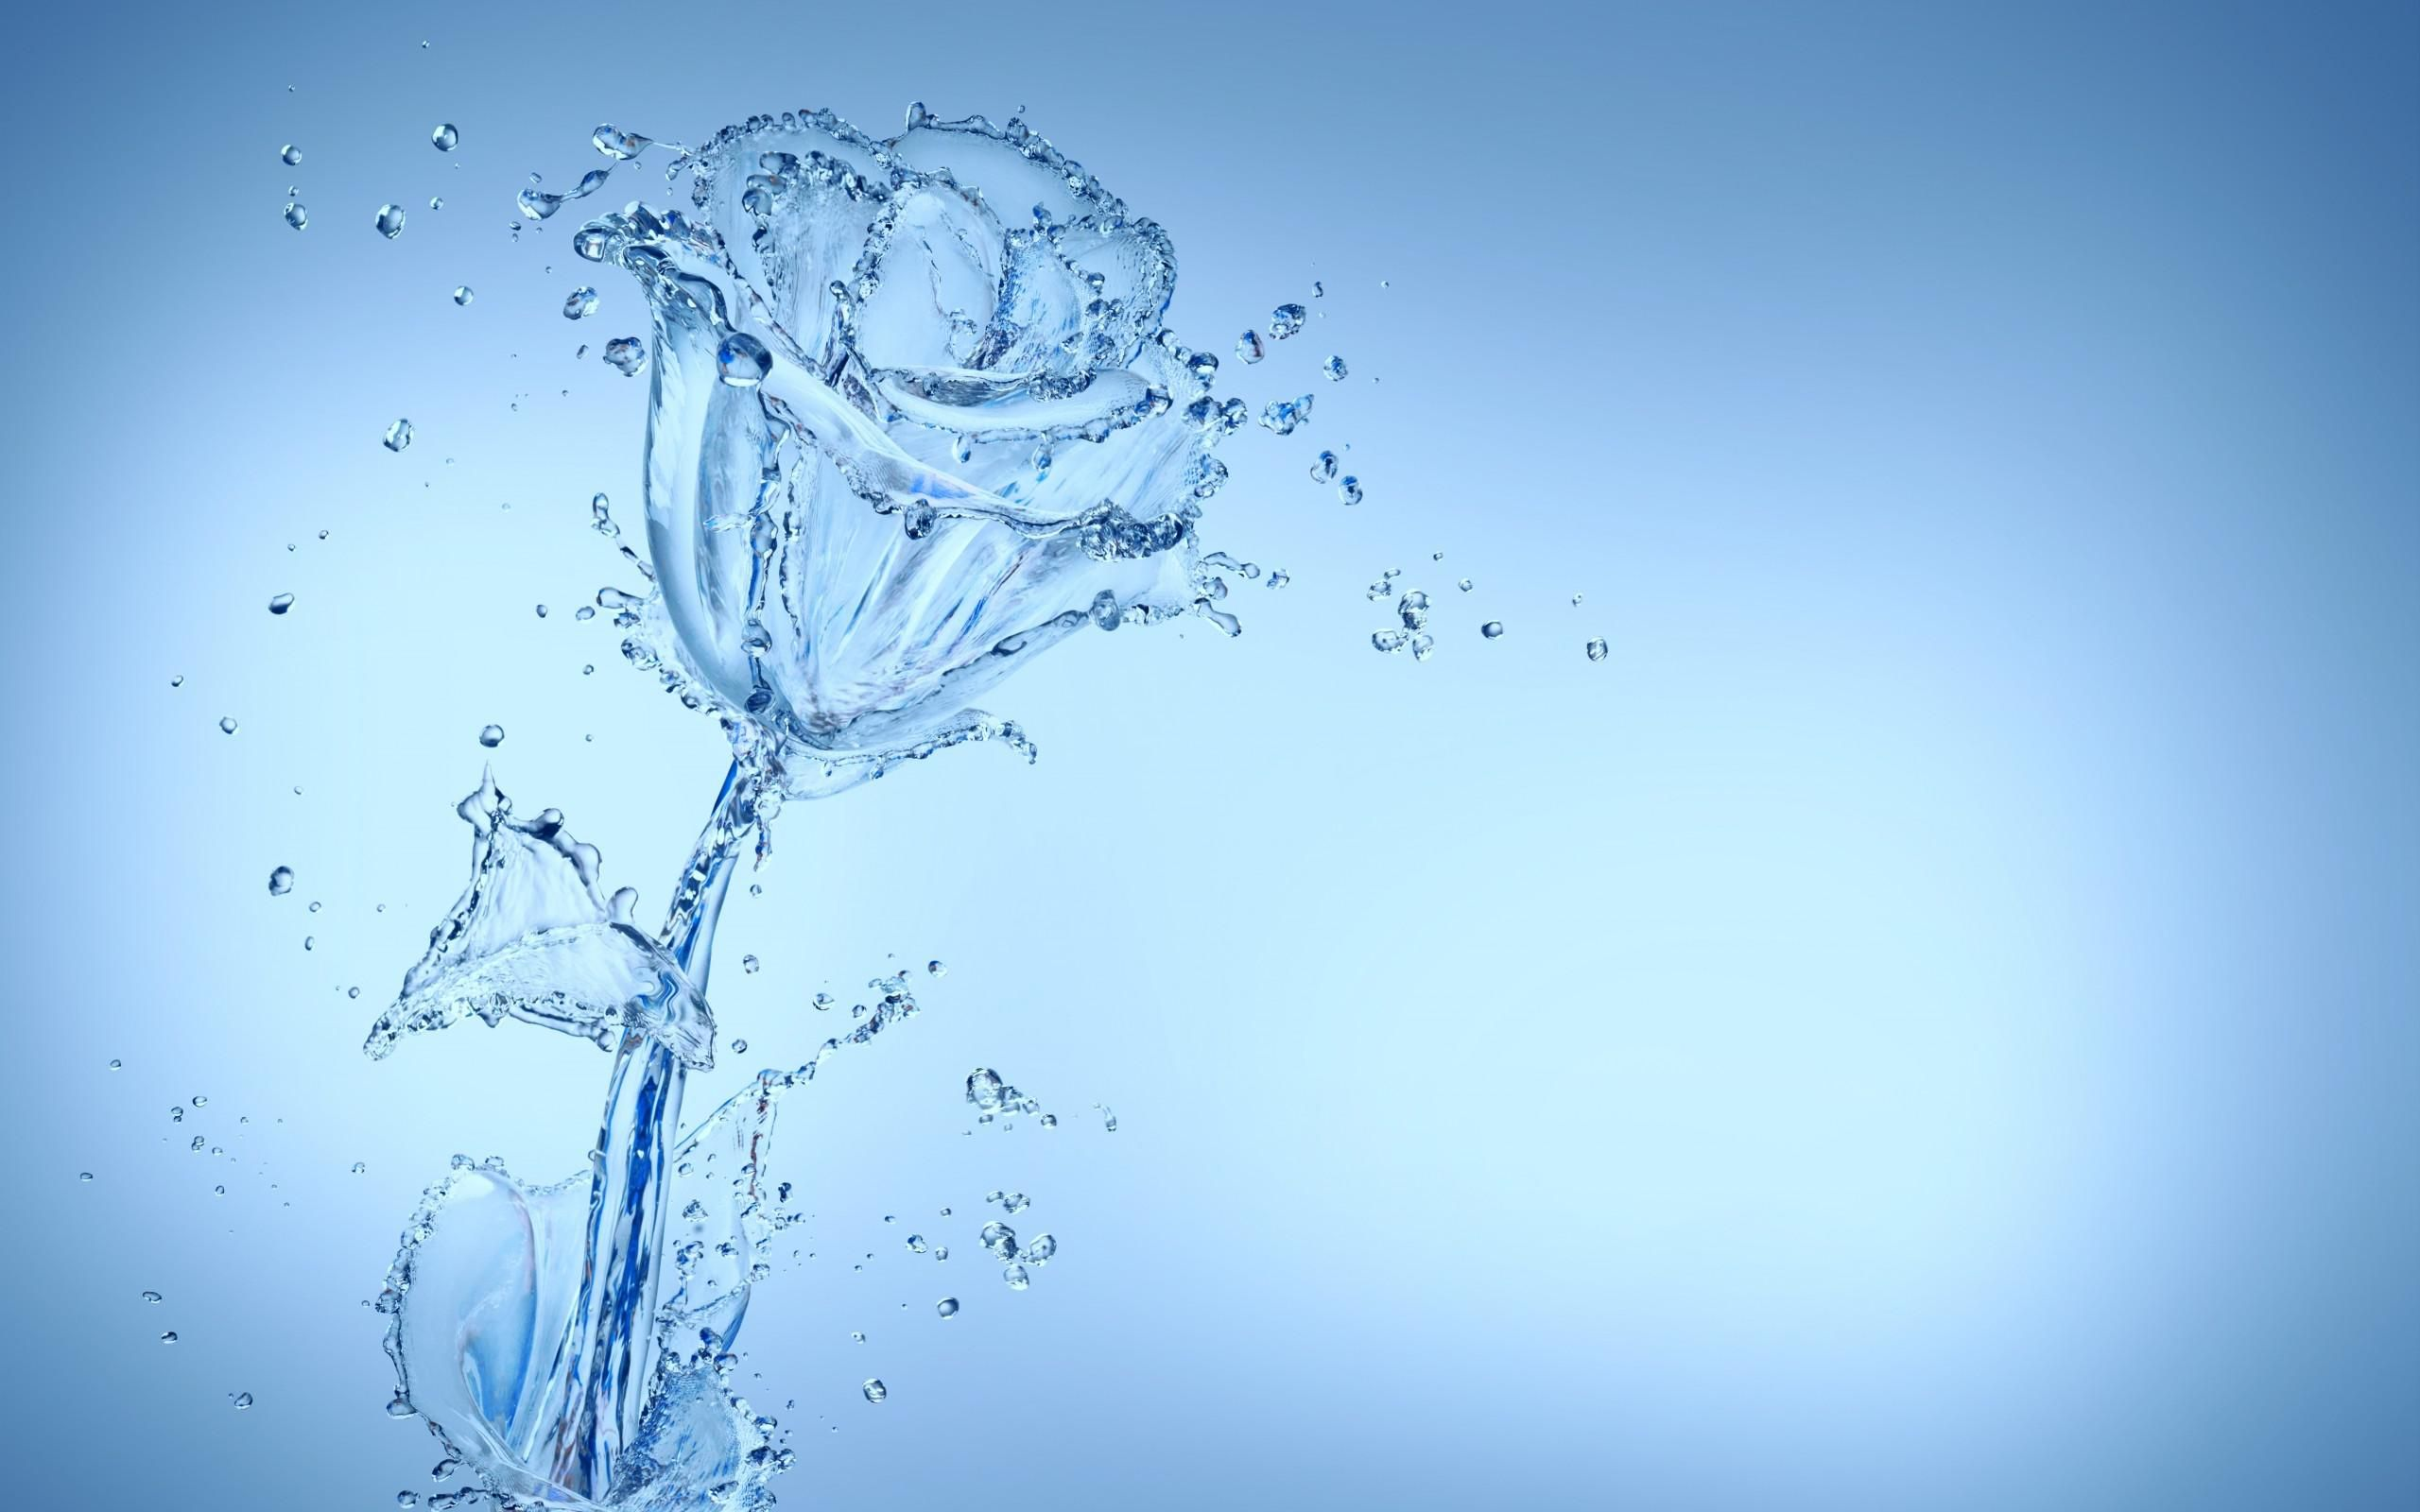 Free Creative Art Wallpapers Background As Wallpaper Hd Wallpaper Backgrounds Art Wallpaper Water Art